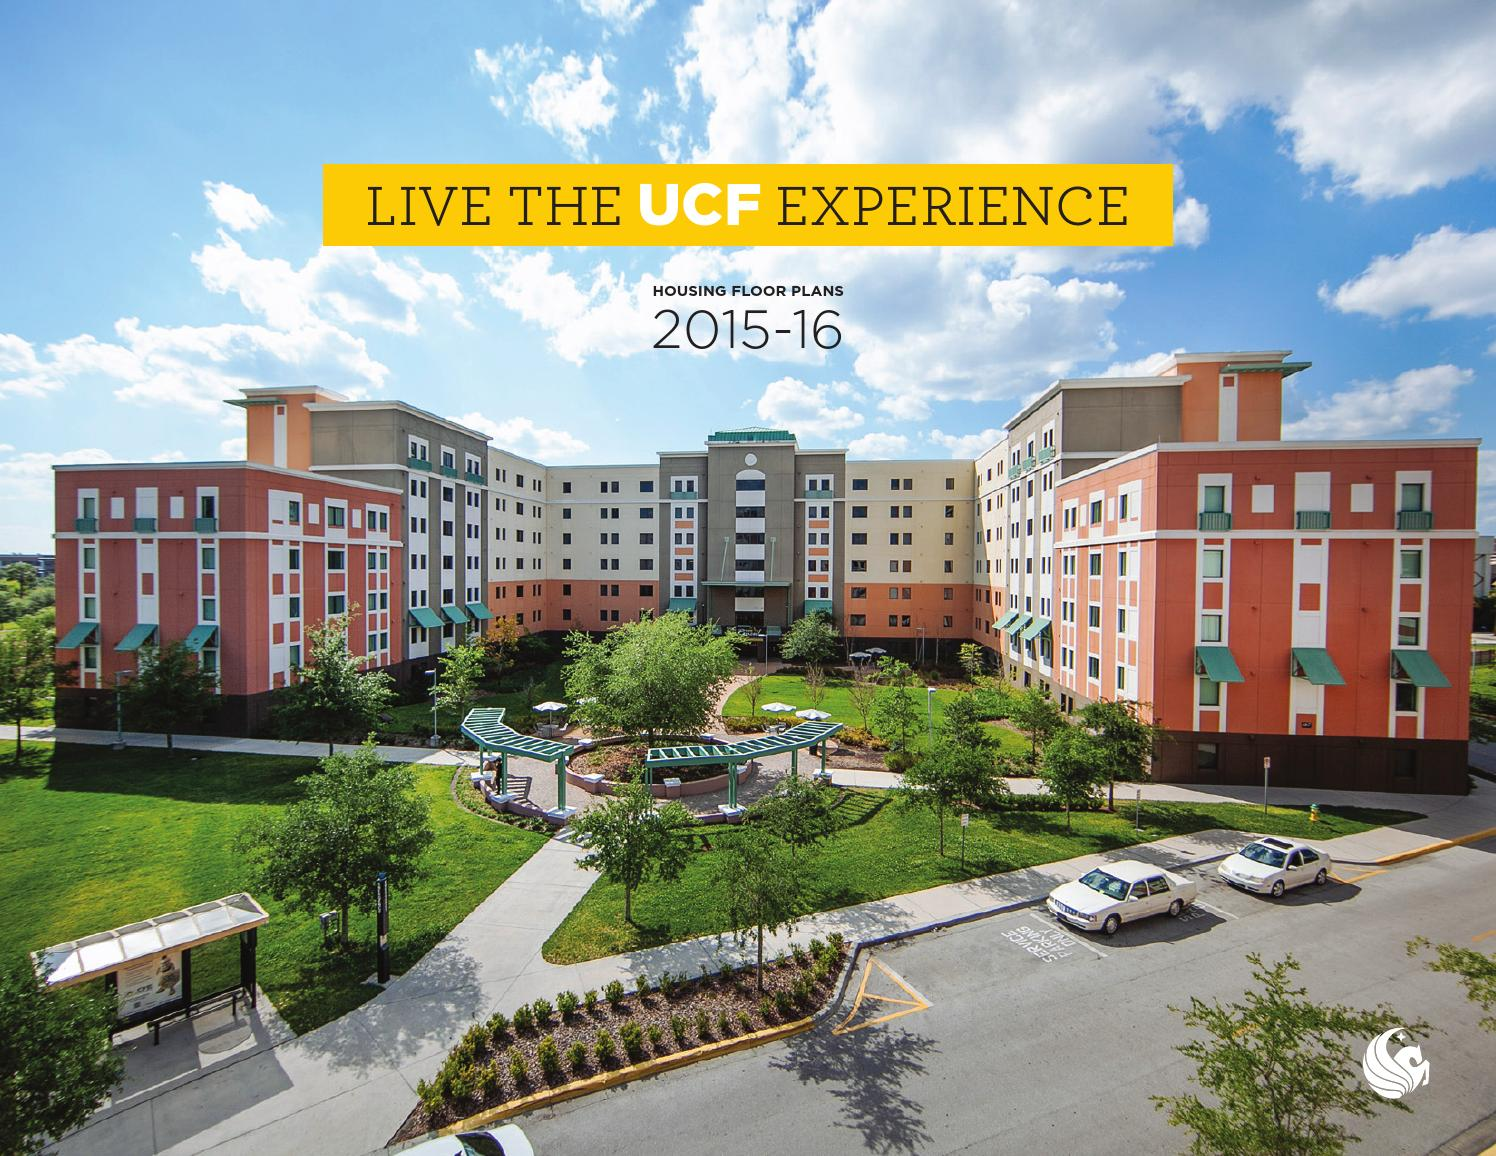 Ucf Housing Floorplans 2015 16 By University Of Central